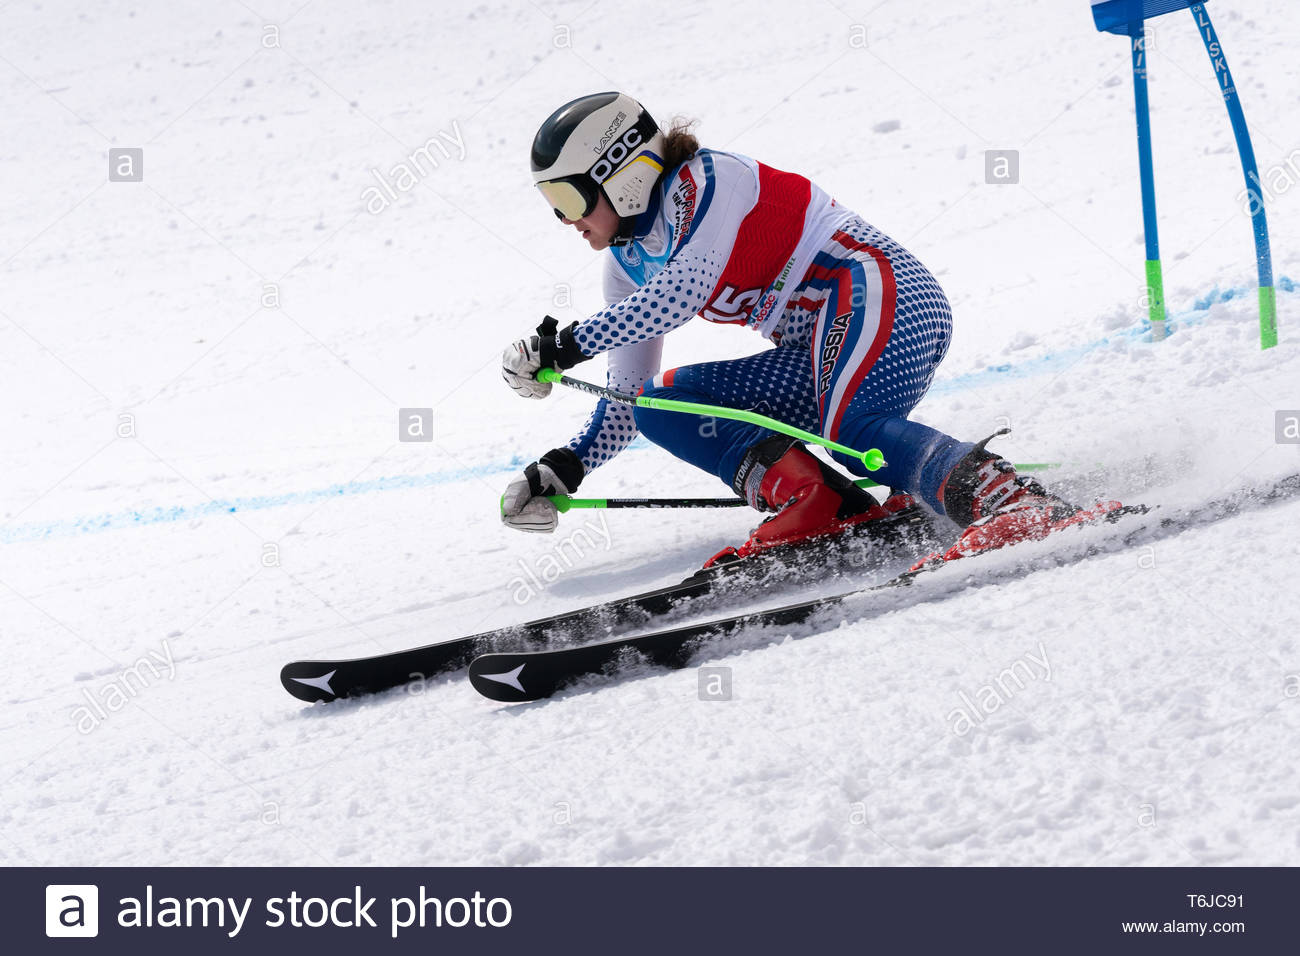 KAMCHATKA PENINSULA, RUSSIAN FEDERATION - APRIL 1, 2019: Russian Women's Alpine Skiing Championship, giant slalom. Mountain skier Alena Khartsyzova (S - Stock Image